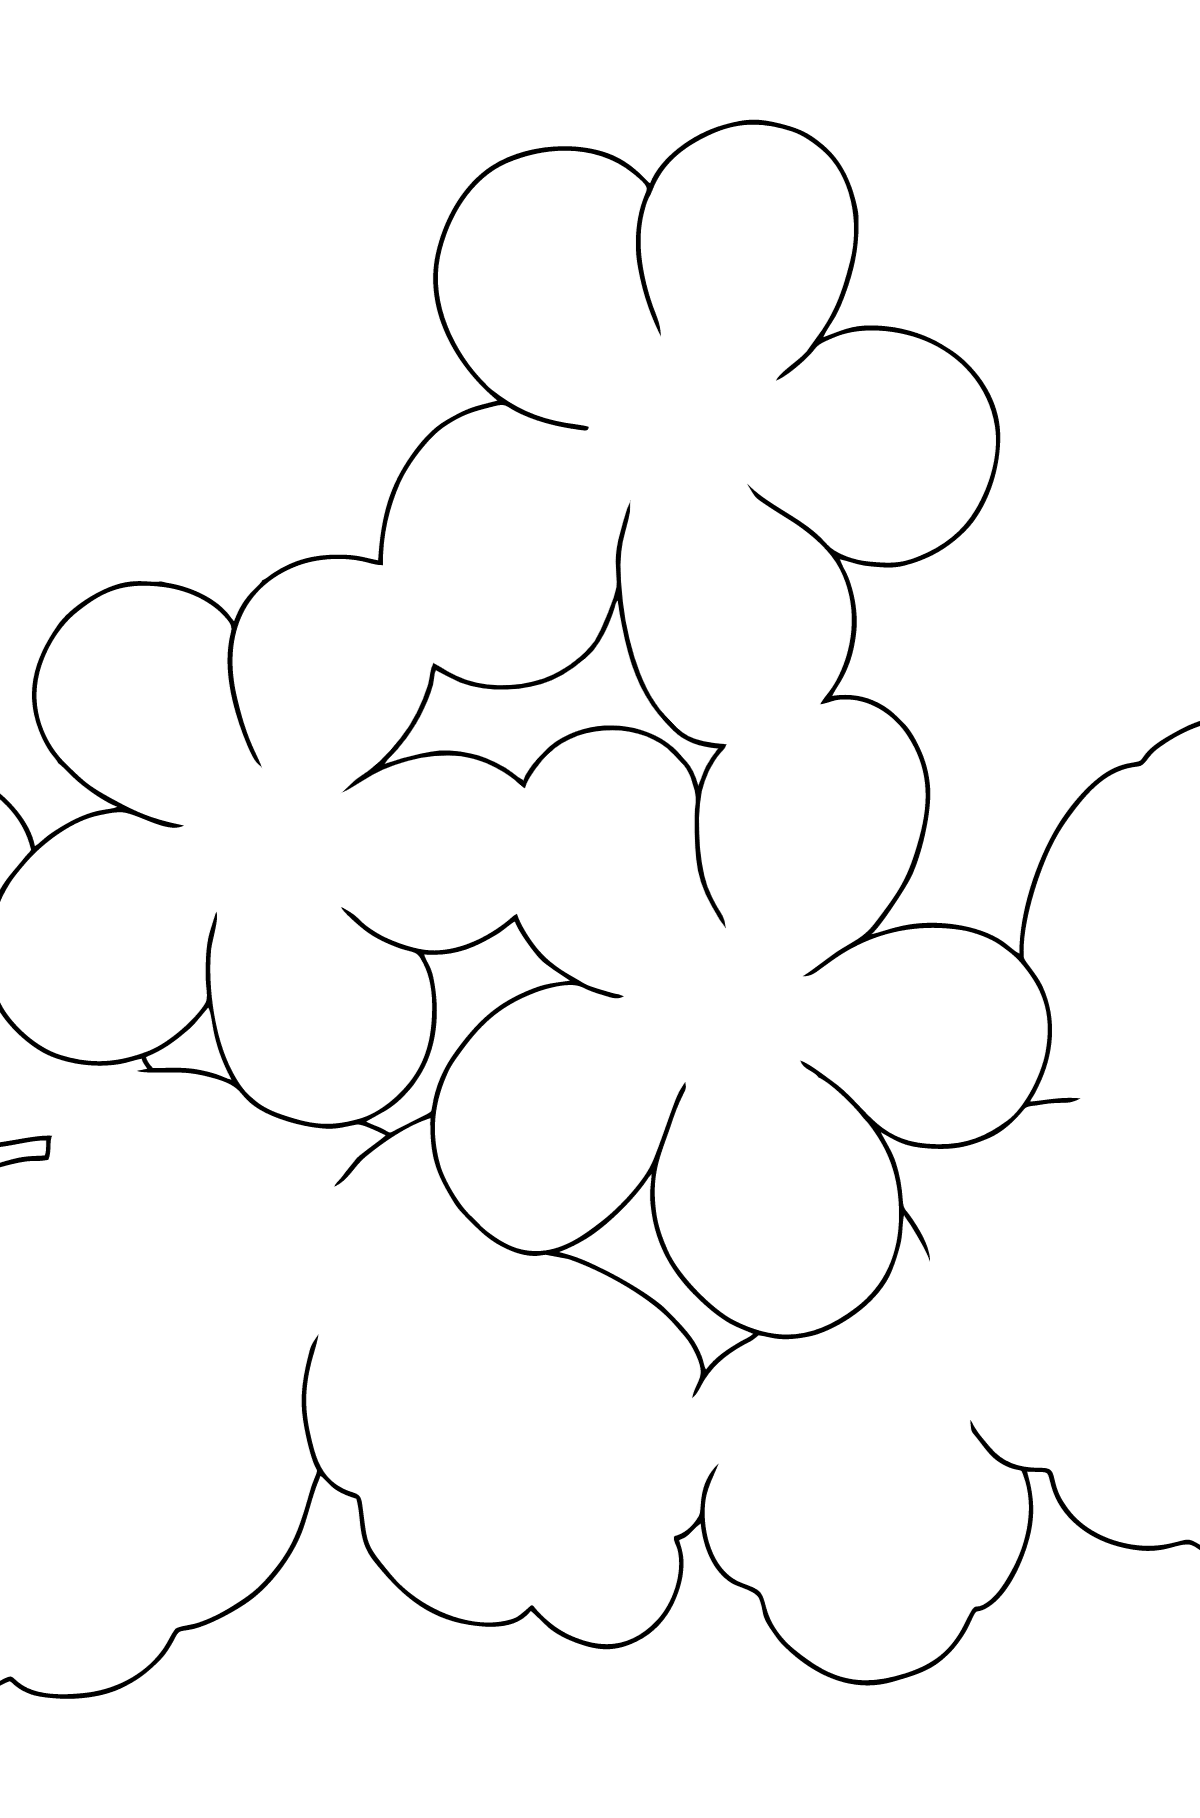 Coloring Page - Spring and First Flowers for Kids